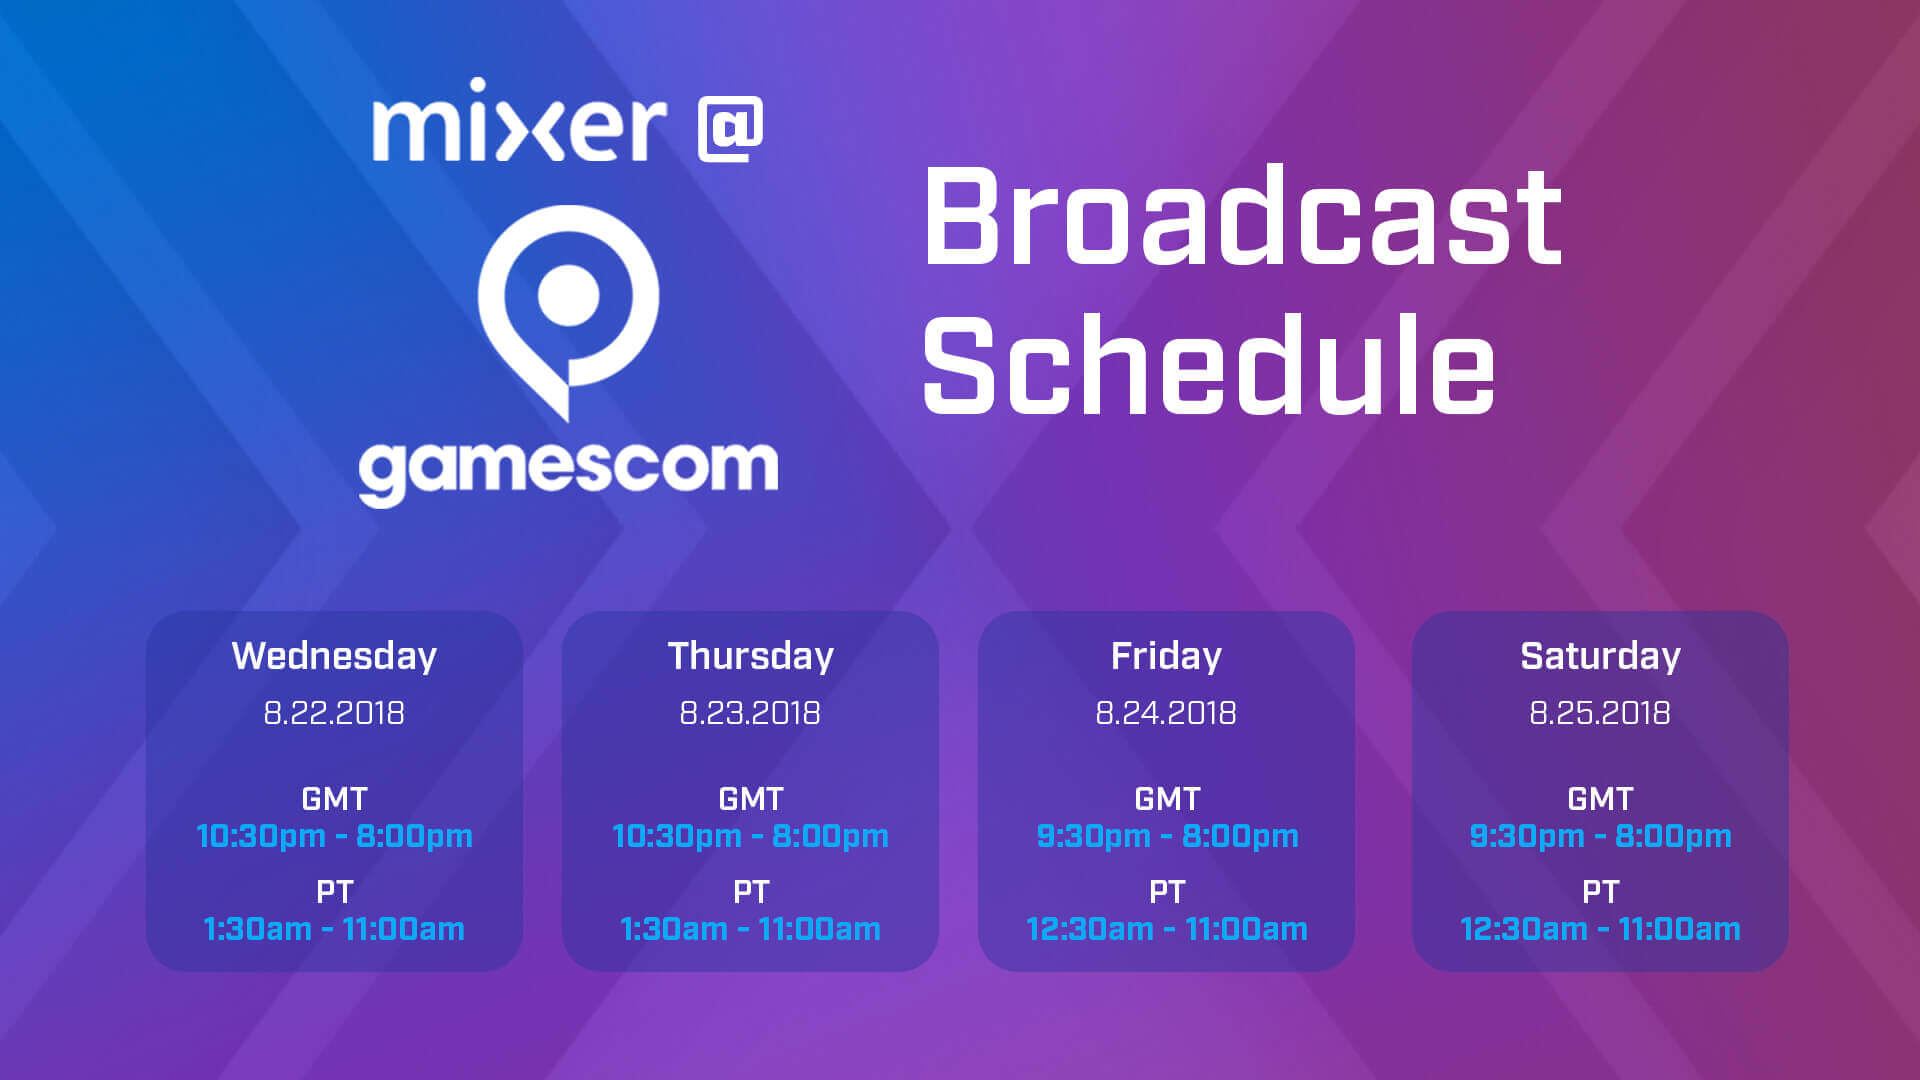 Mixer gamescom 2018 schedule